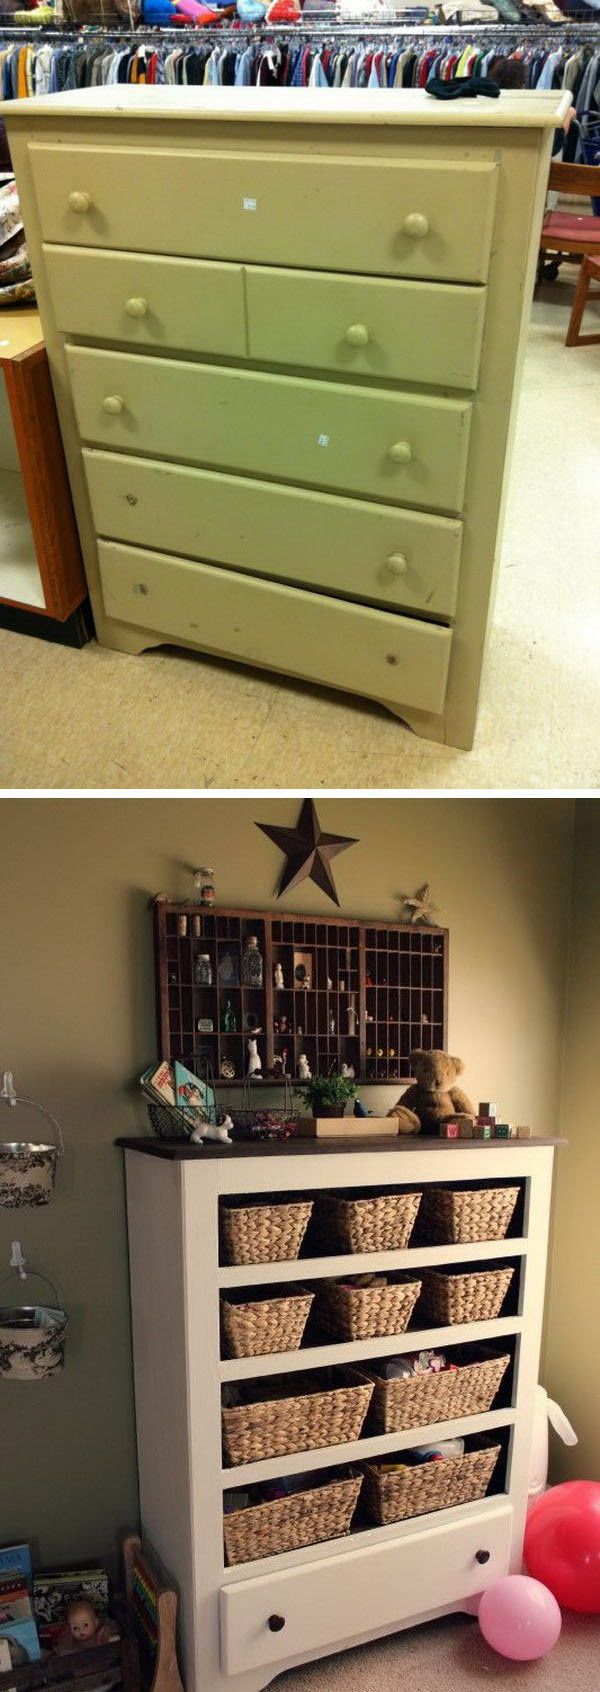 Turn a thrift store drawer into funny functional storage or